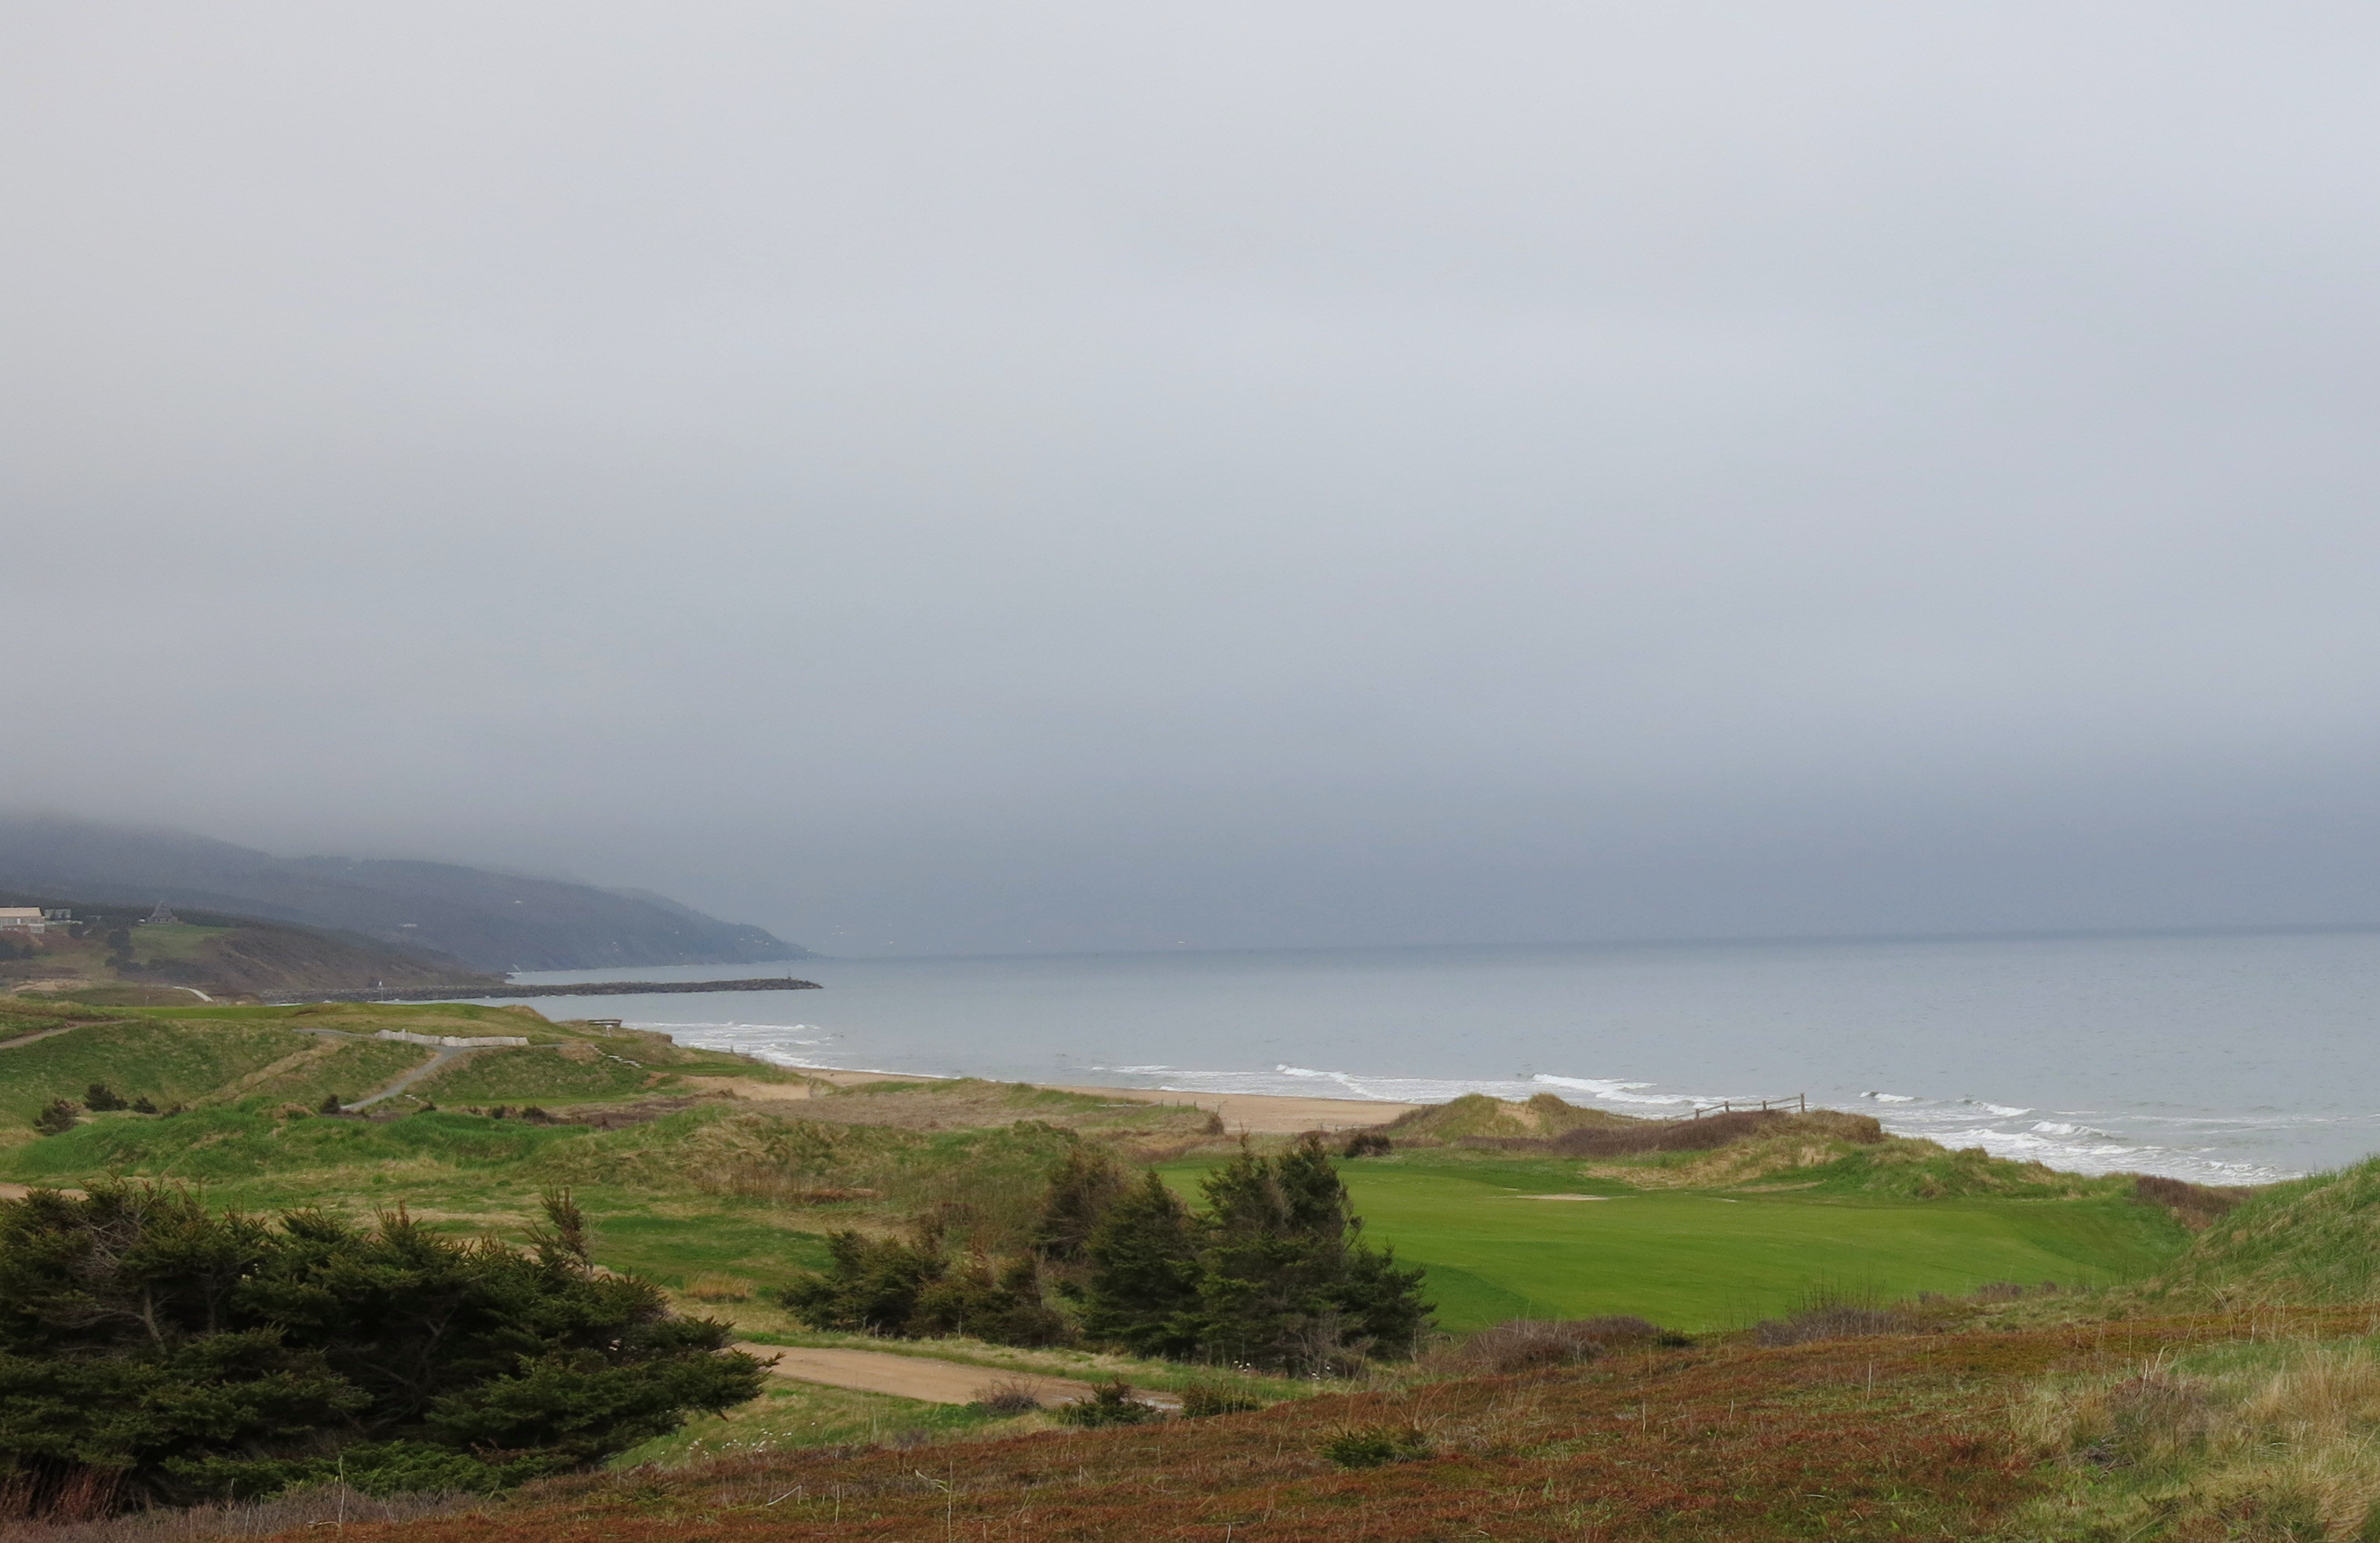 Cabot Links in Nova Scotia.